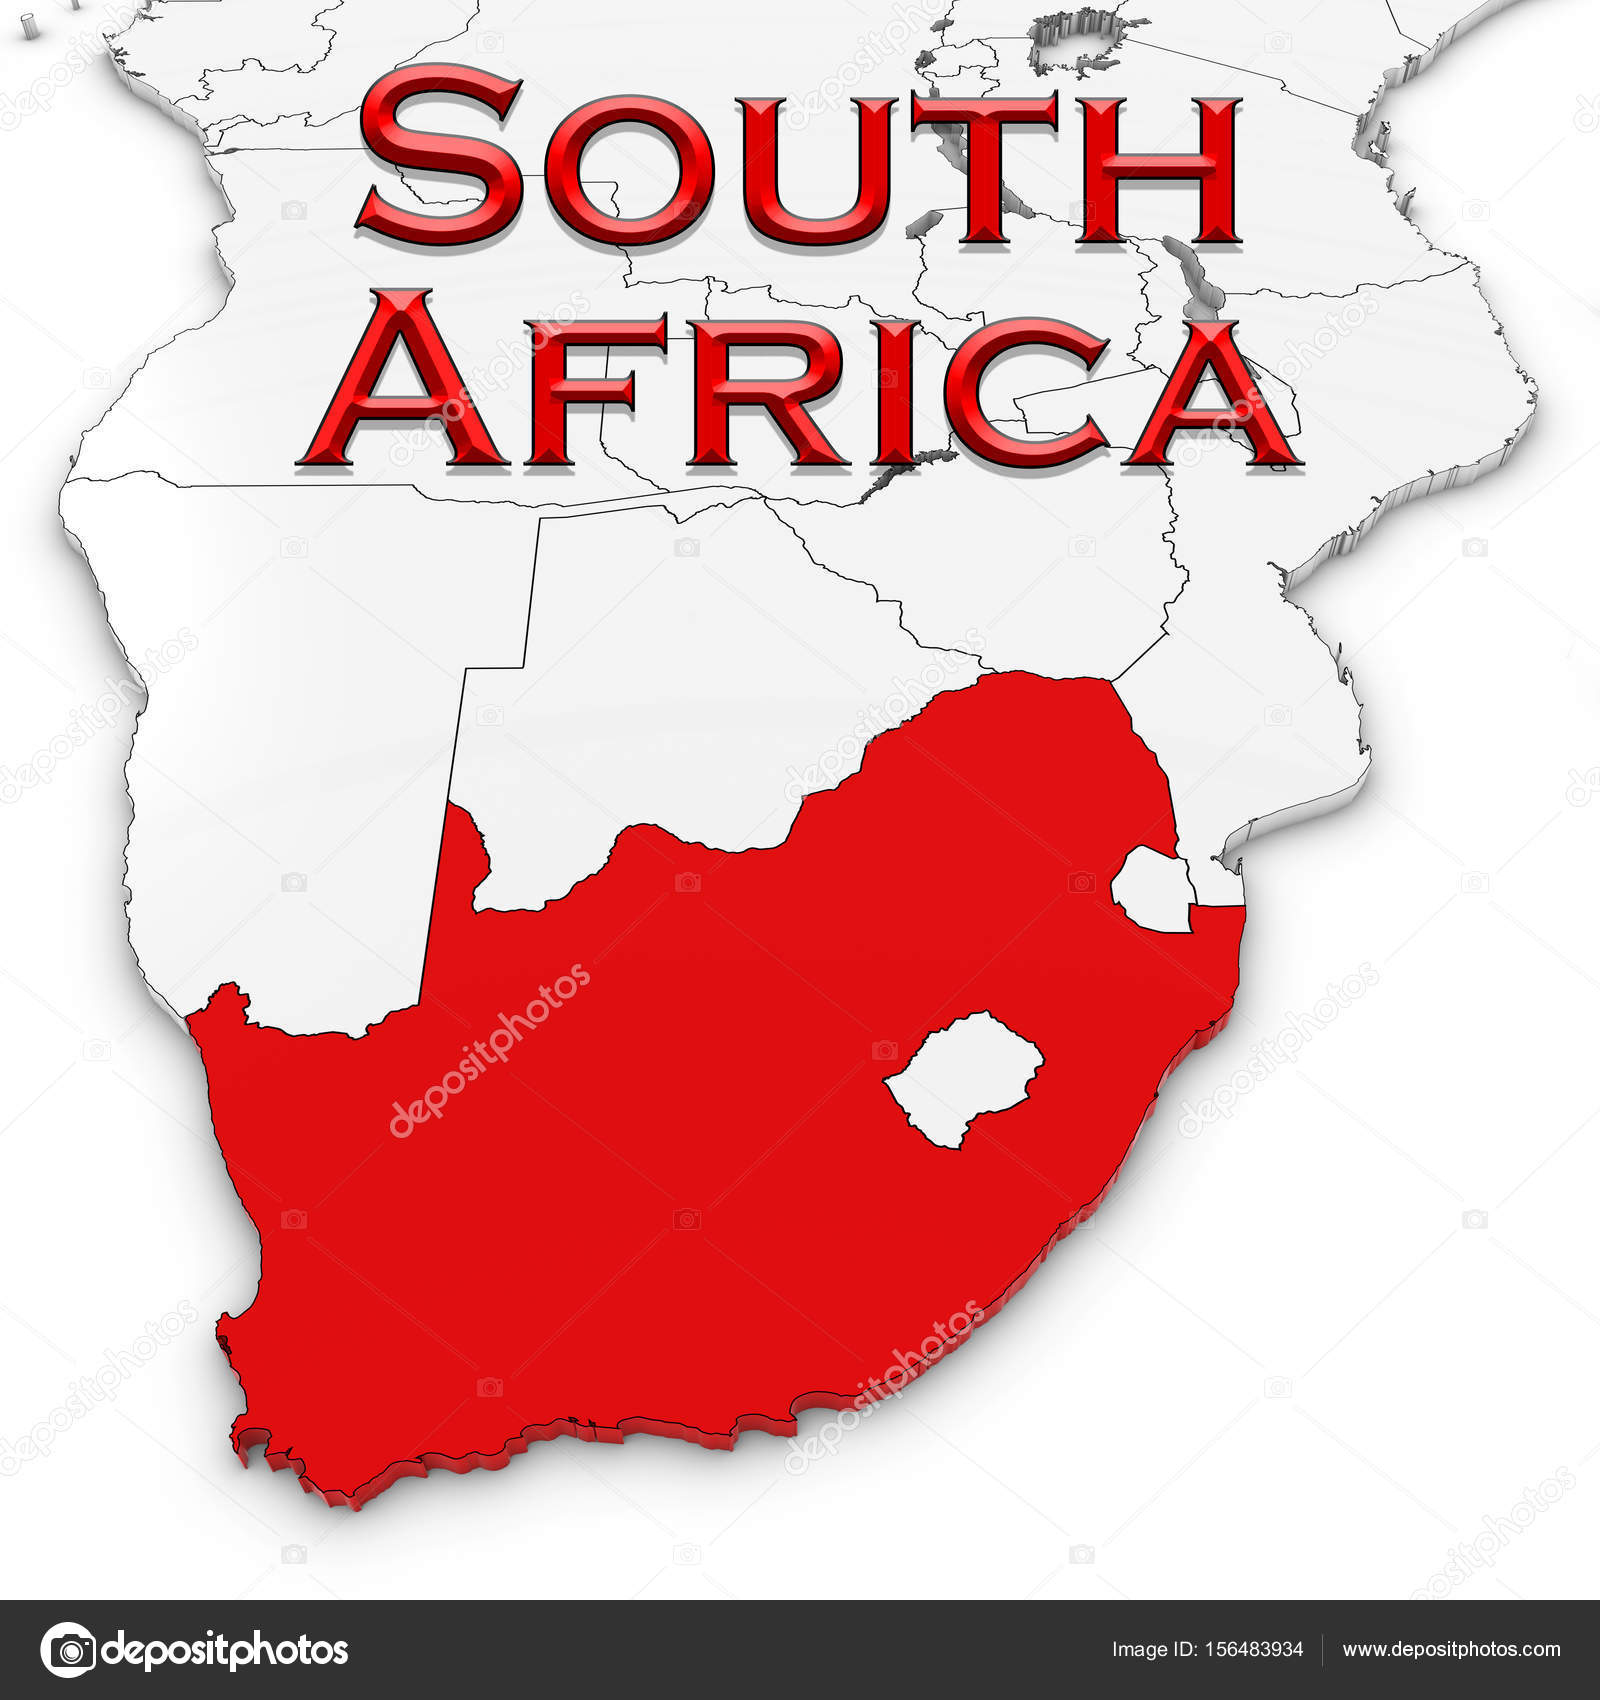 3d map of south africa with country name highlighted red on whit 3d map of south africa with country name highlighted red on whit stock photo gumiabroncs Choice Image